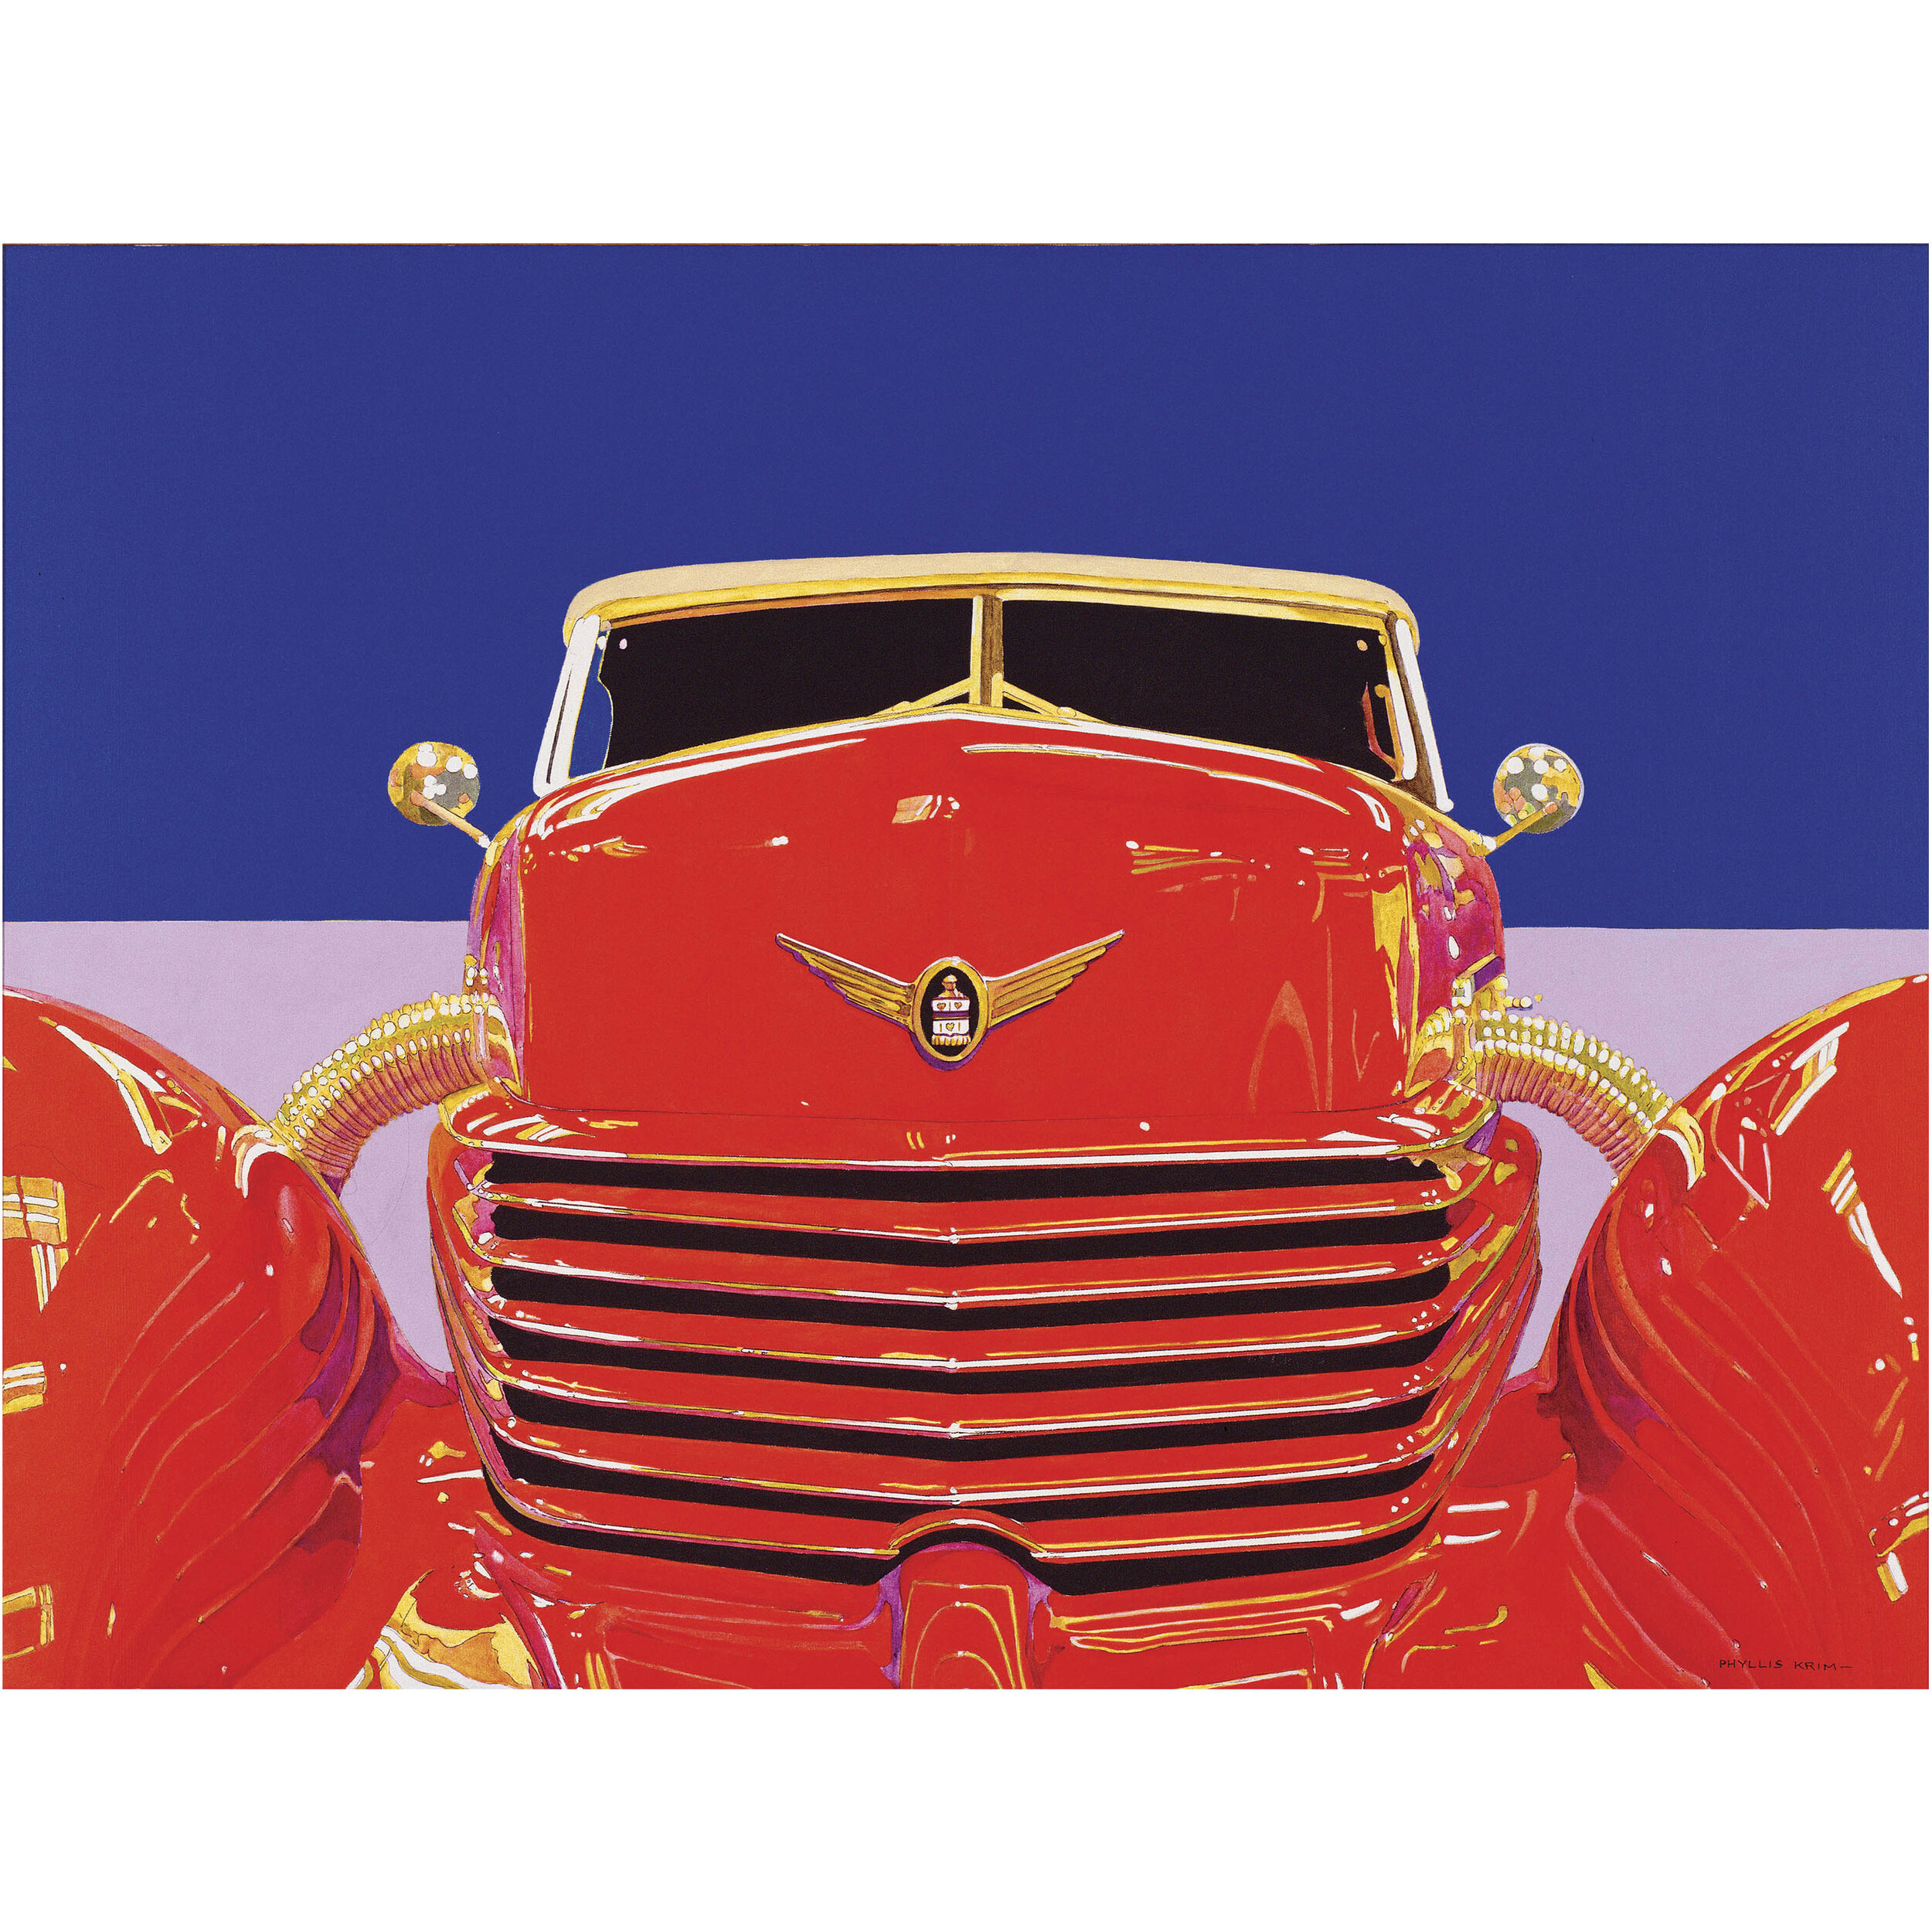 Dominated by the red cord car in the center cover the background that with light navy on the top and light purple color at the bottom